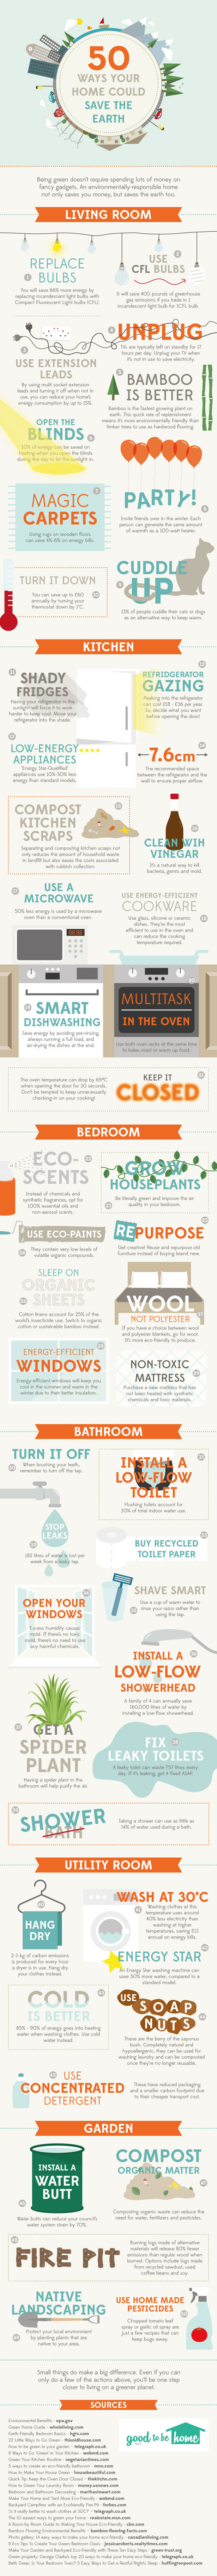 """50 Ways Your Home Could Save The Earth"" (c)inhabitat.com/anglianhome.co.uk"